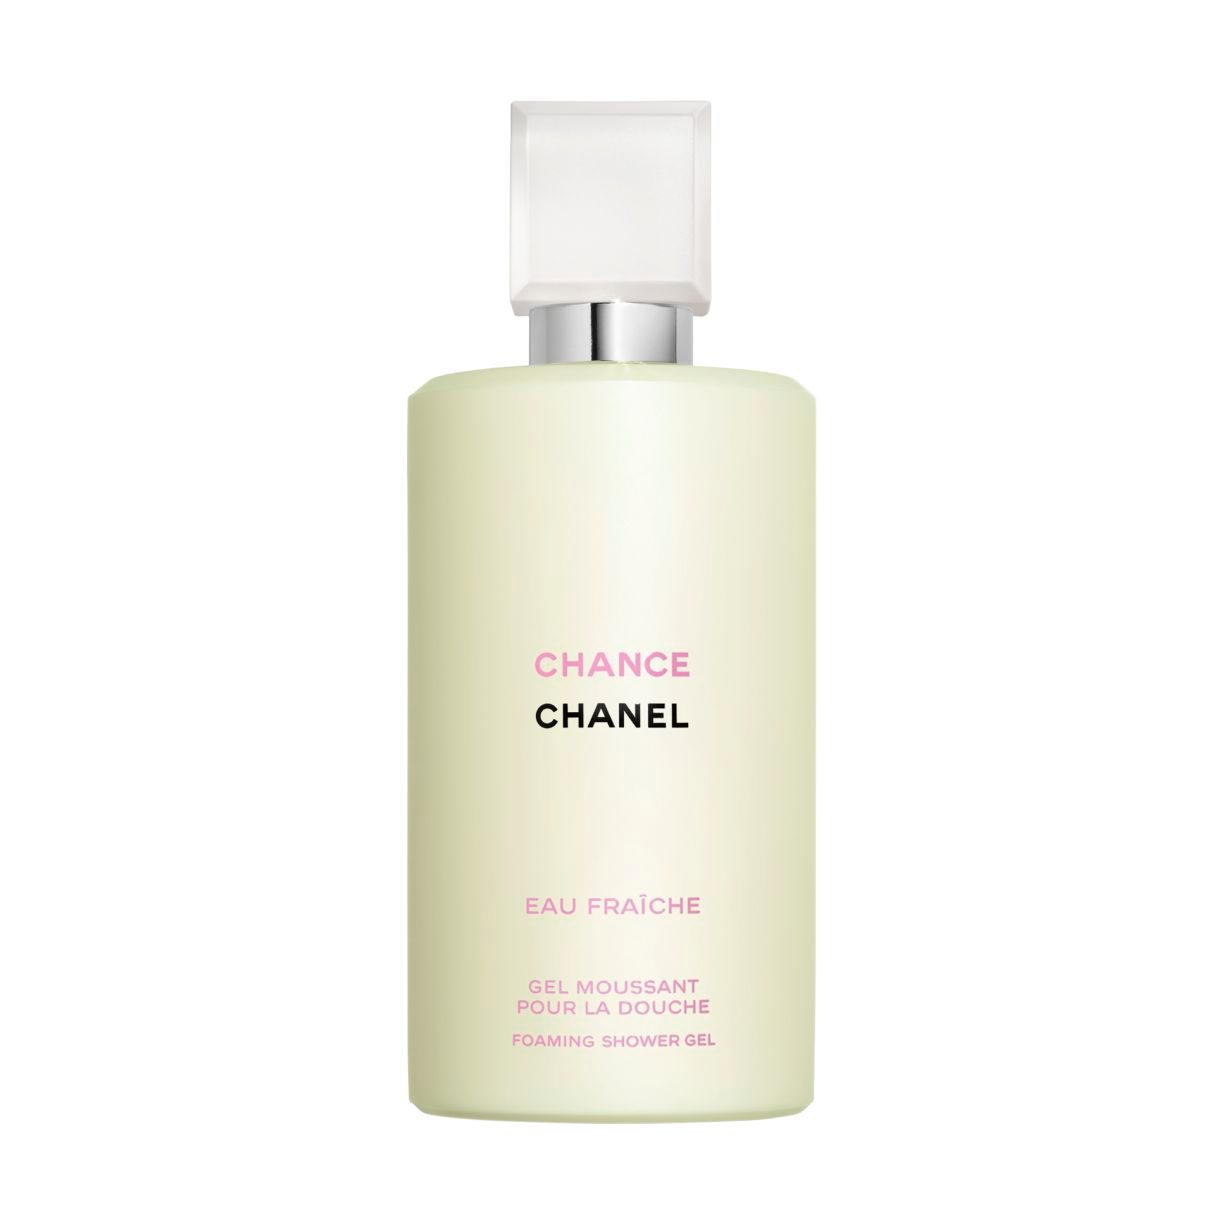 CHANCE EAU FRAÎCHE FOAMING SHOWER GEL